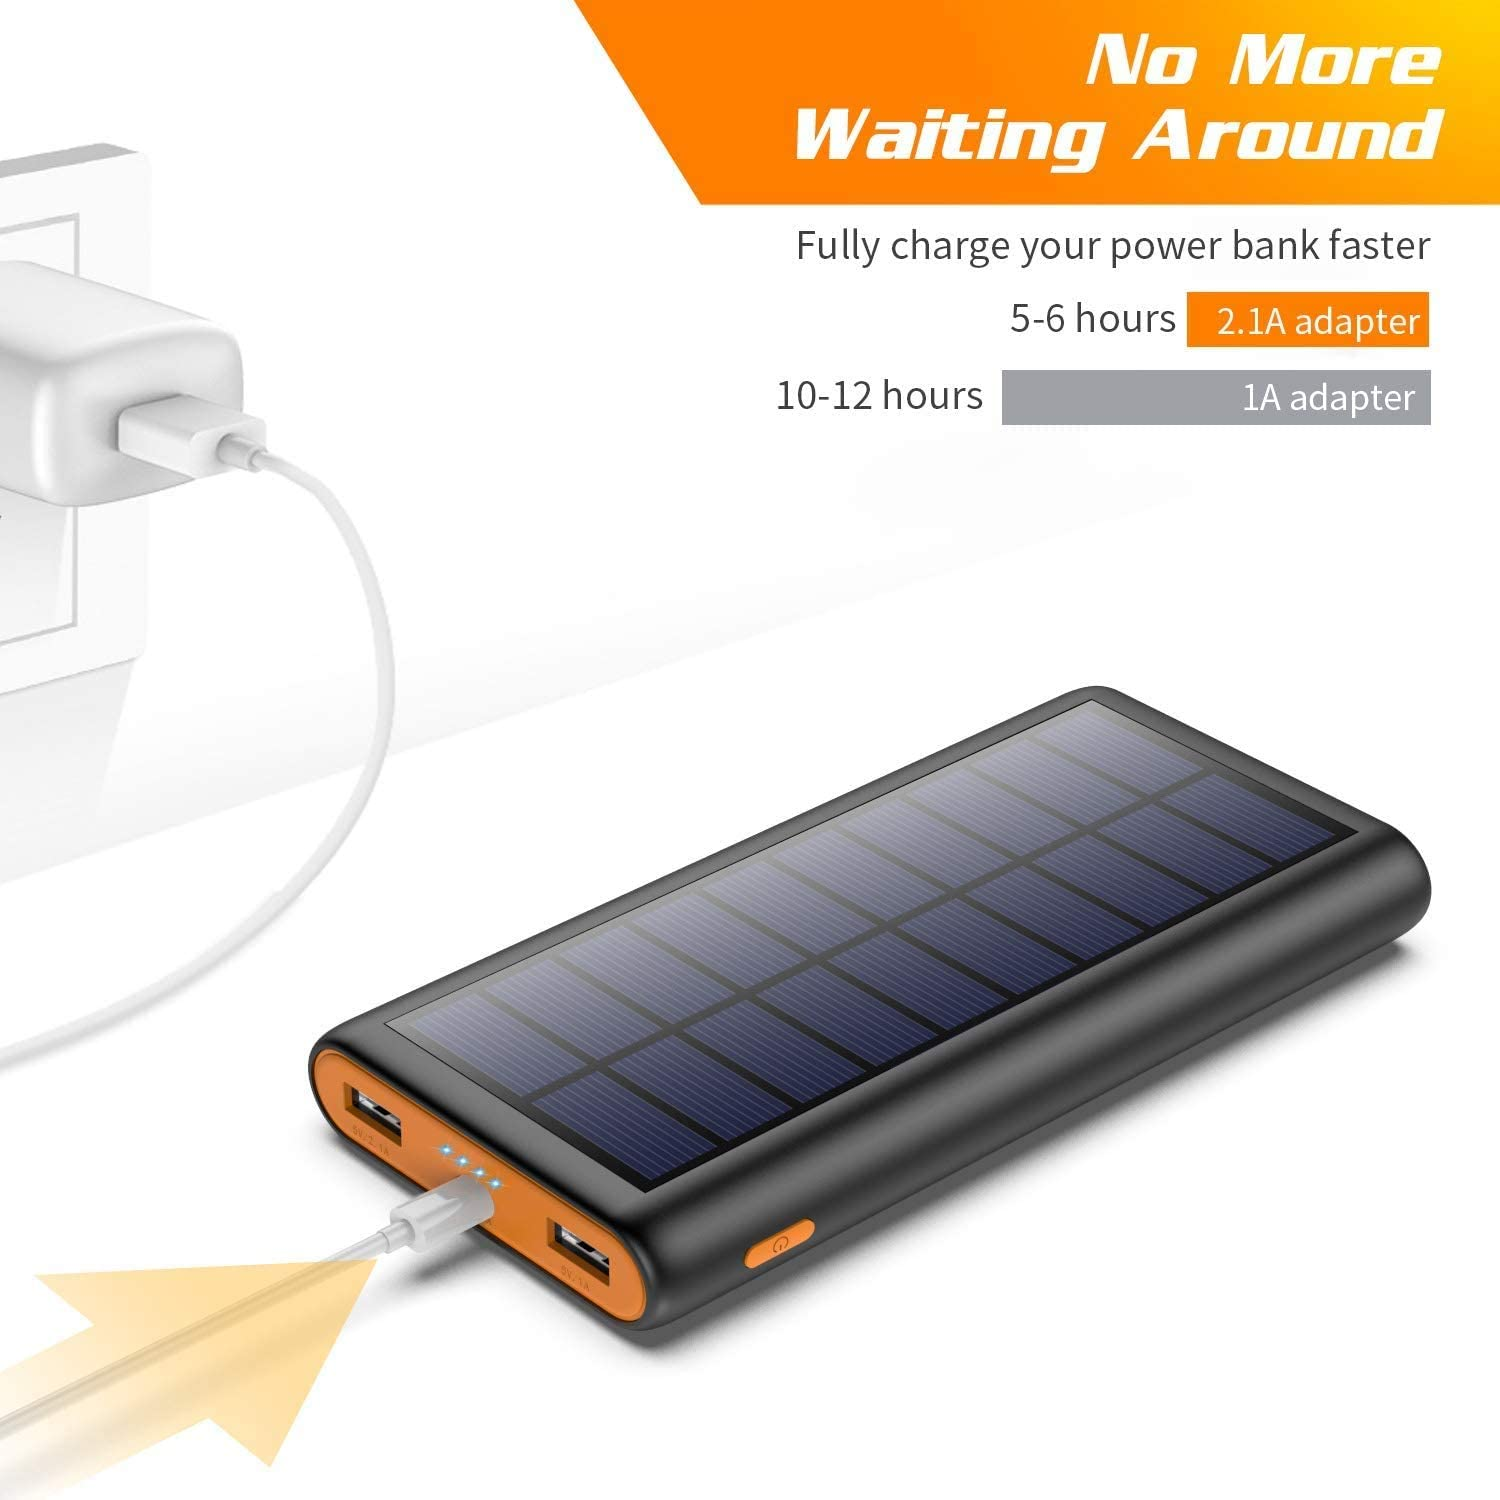 2020 Newest Design 2 USB Output Fast Phone Portable Charger Cell Phone Solar Battery Bank Pack External Backup Pack for iPhone iPad Tablet Samsung Galaxy Android Solar Charger Power Bank 26800mah